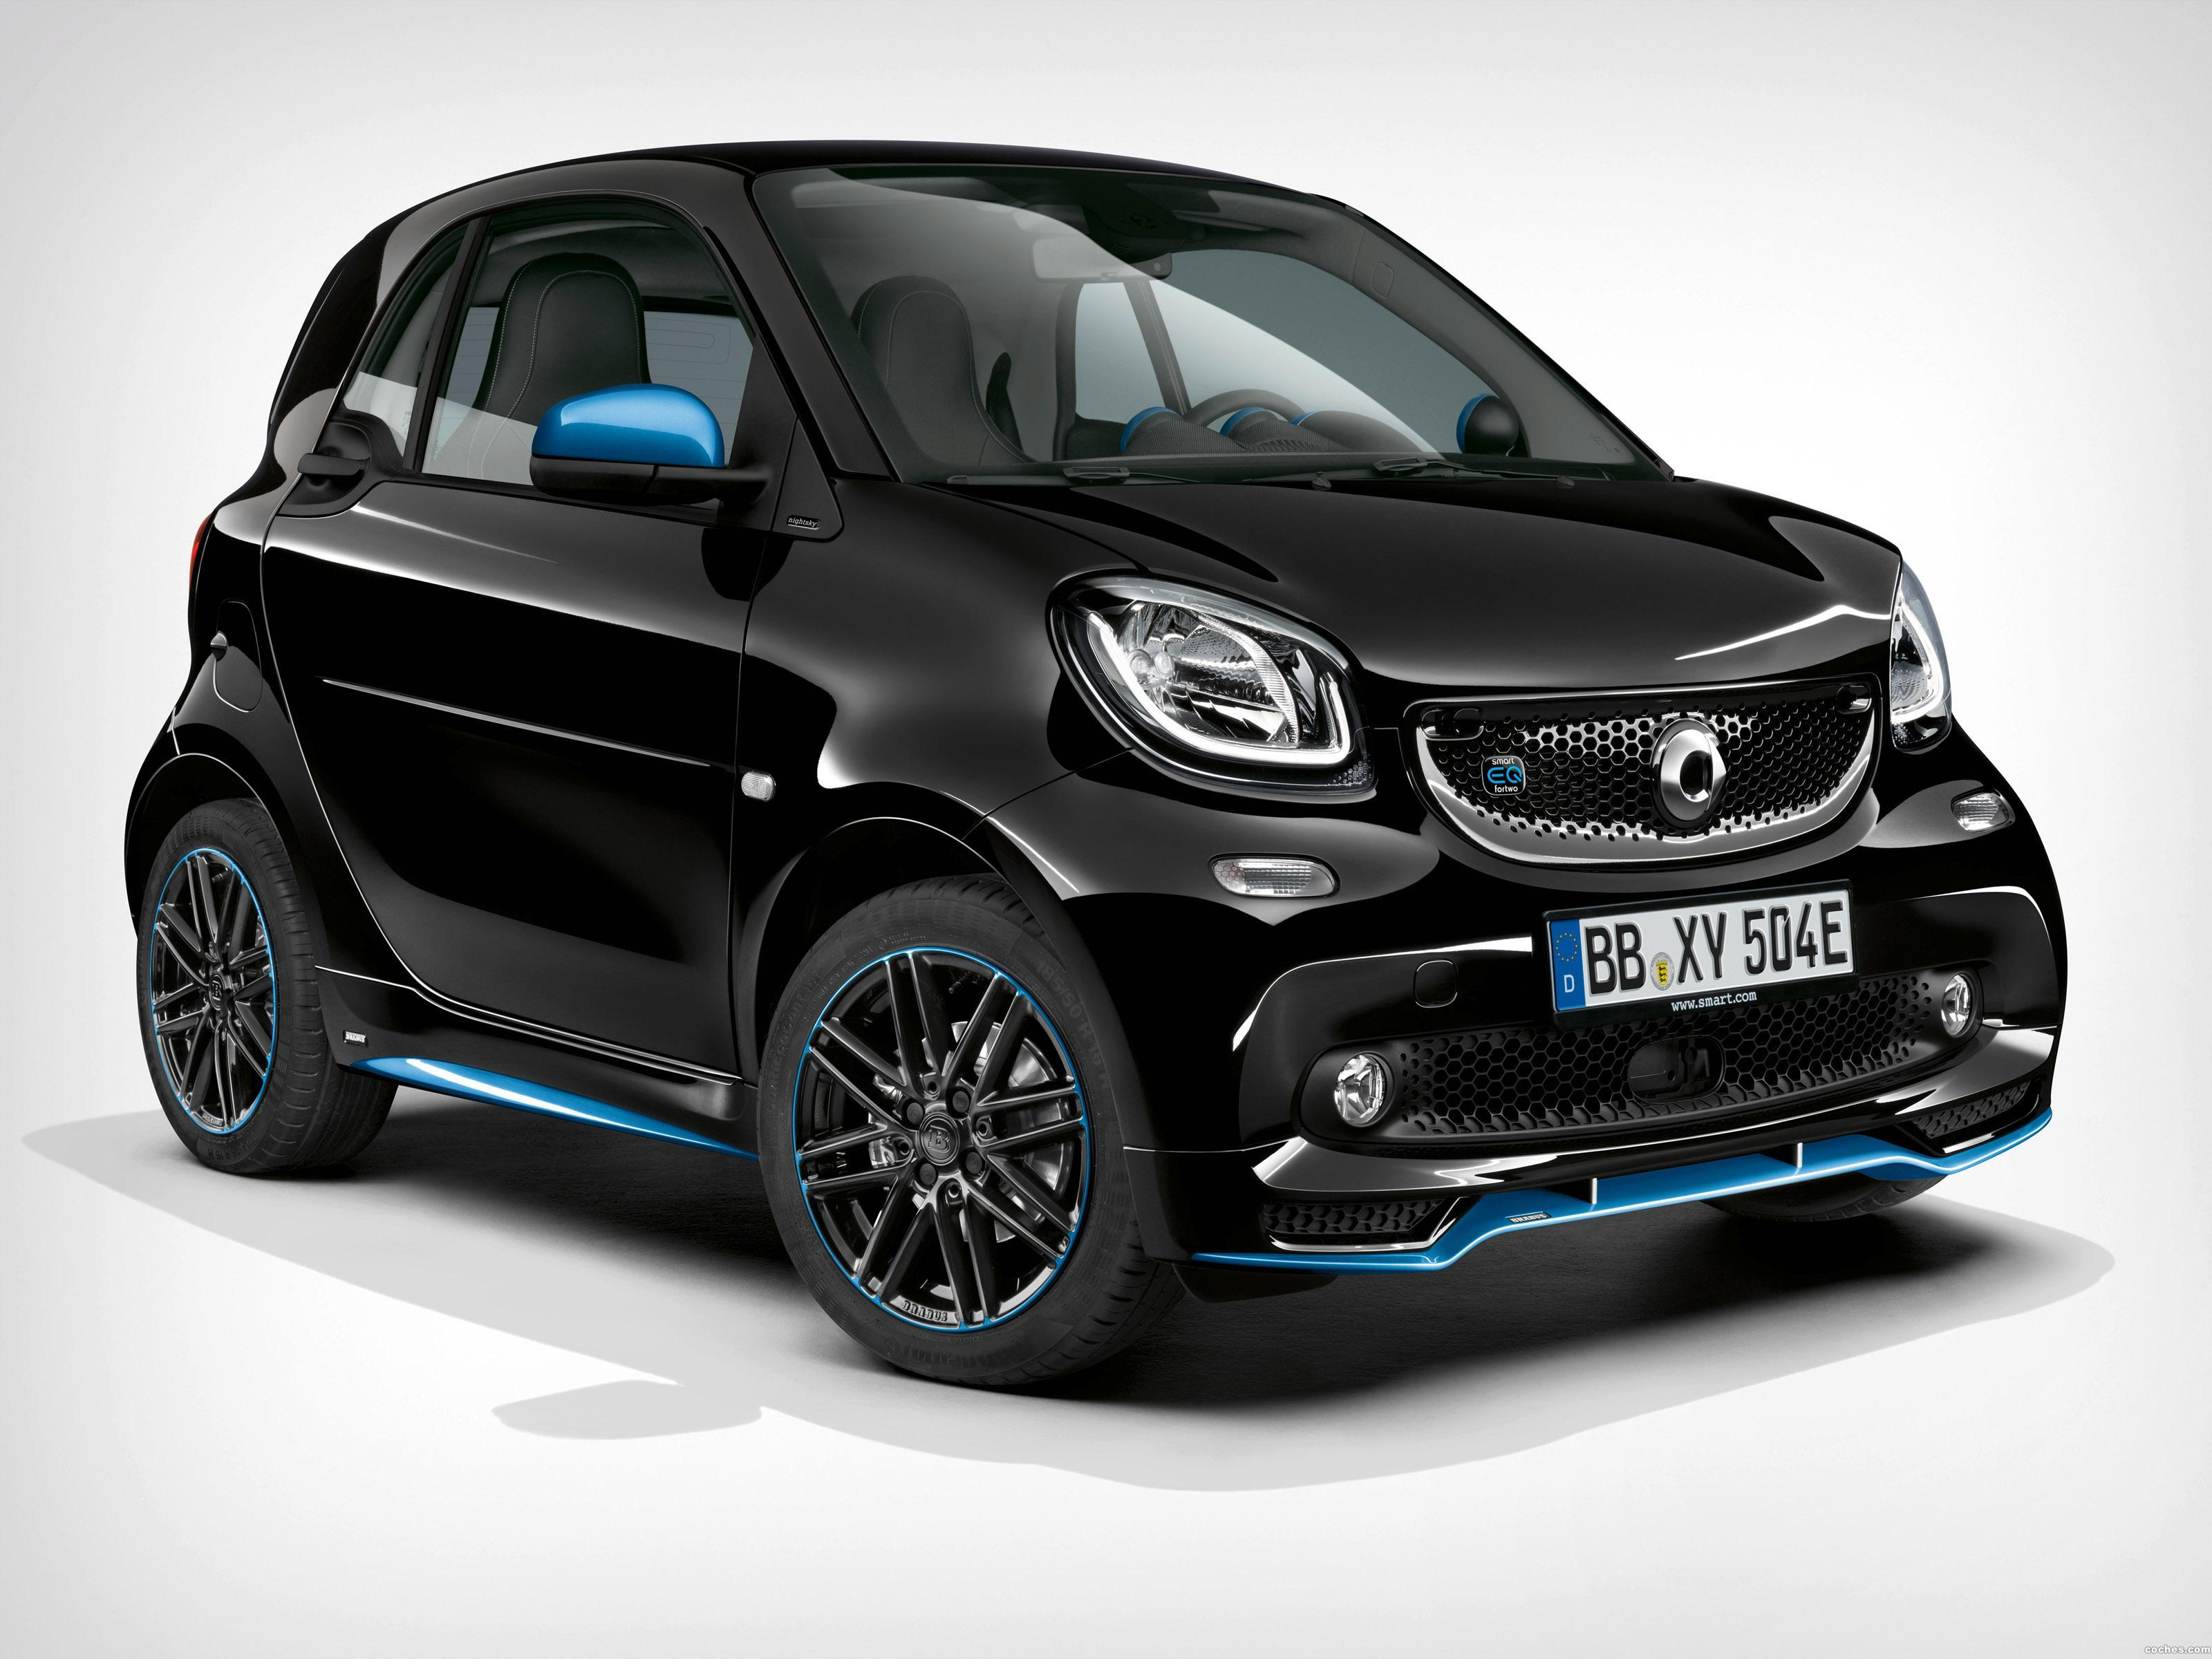 smart_fortwo-eq-edition-nightsky-coupe-c453-2018_r5.jpg